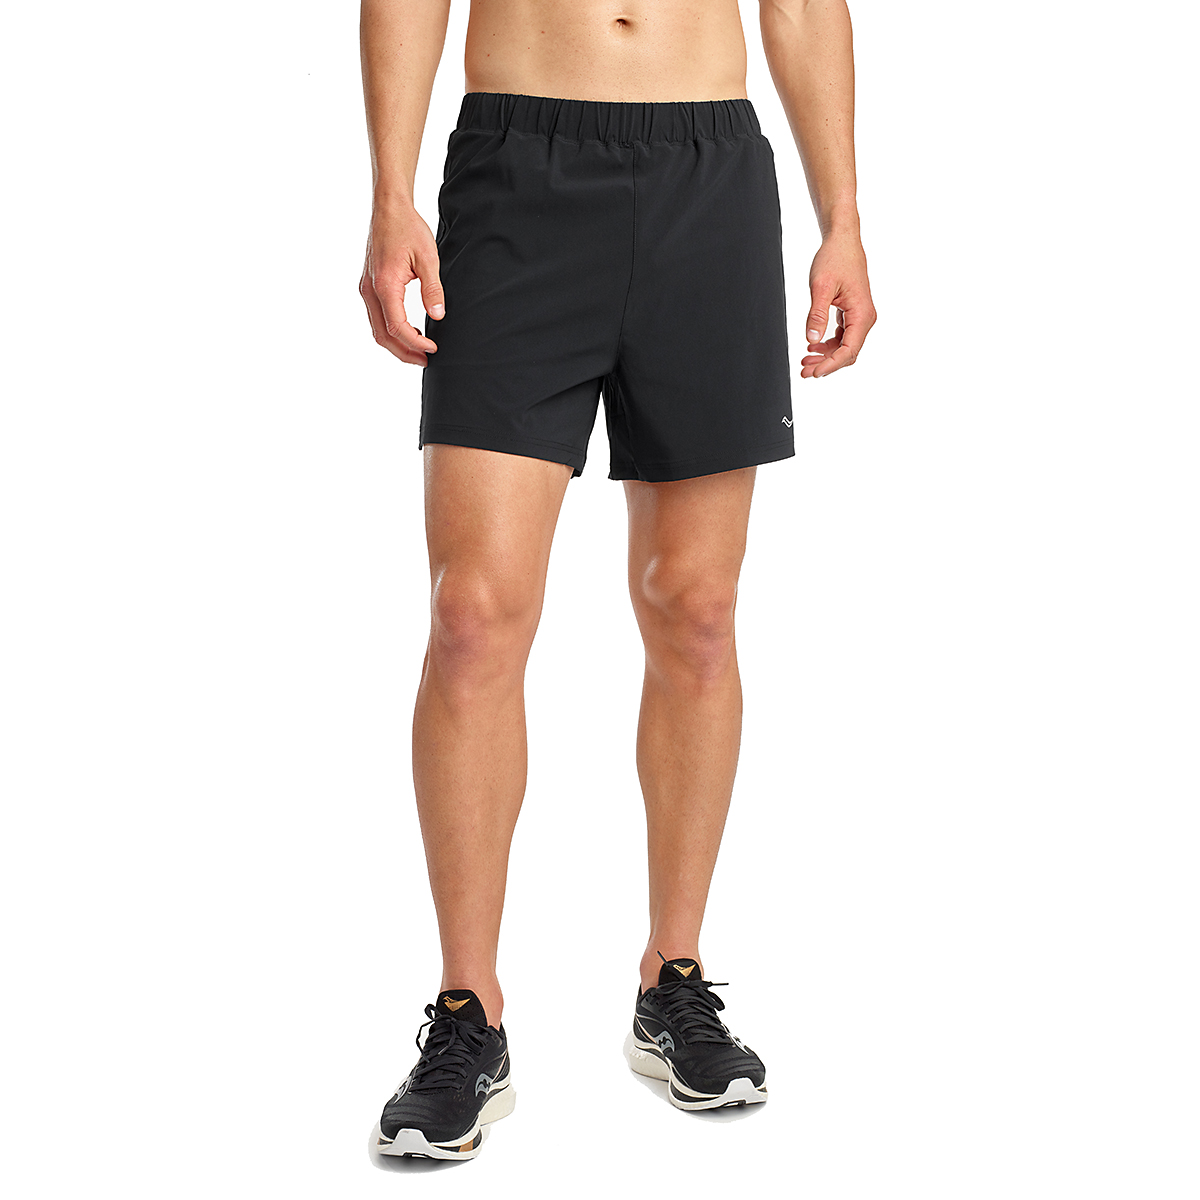 "Men's Saucony Outpace 5"" Short - Color: Black - Size: S, Black, large, image 1"